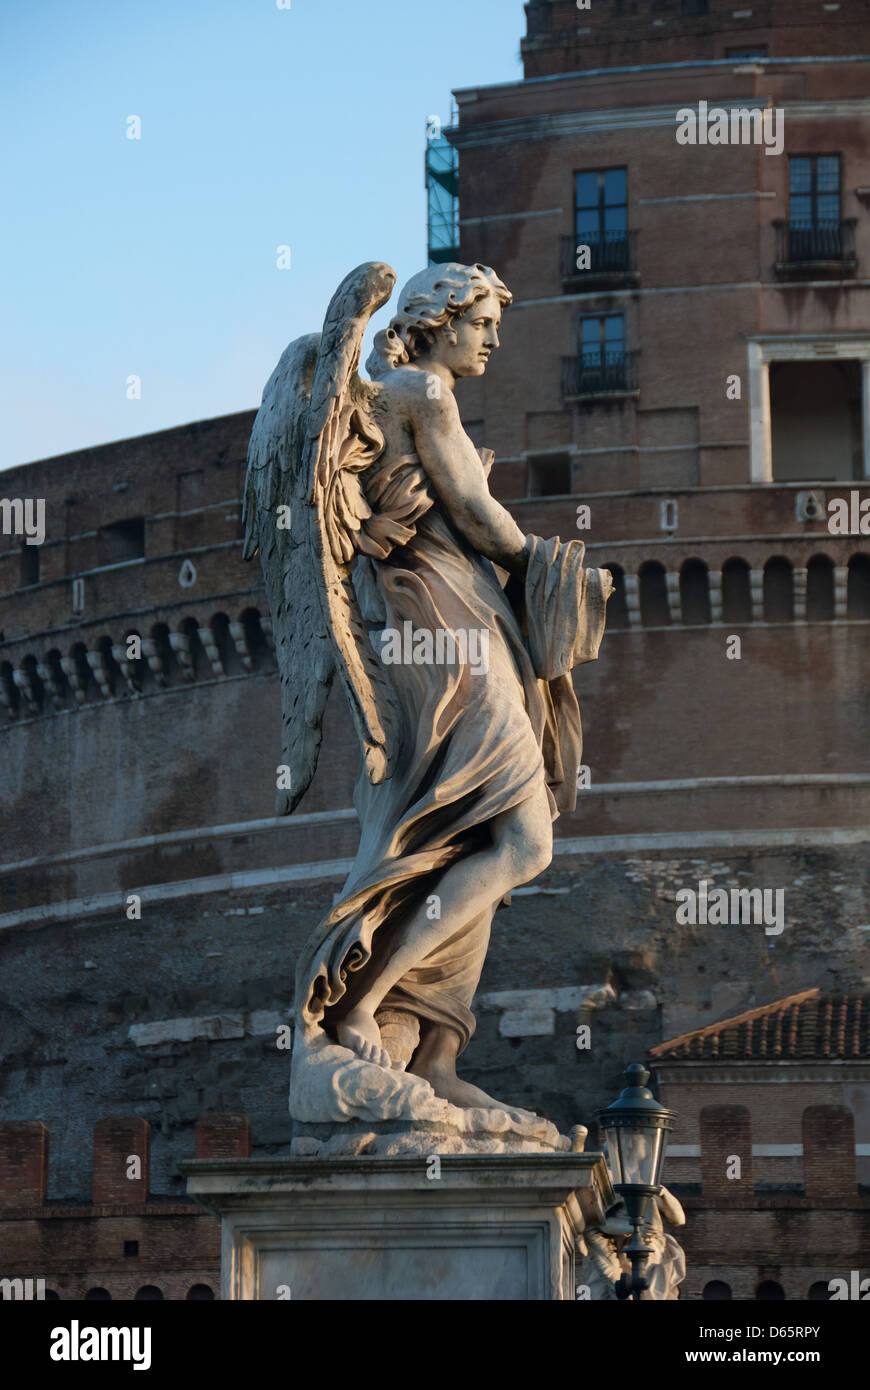 ROME, ITALY. One of Bernini's stone angels on the Ponte Sant' Angelo. 2013. - Stock Image